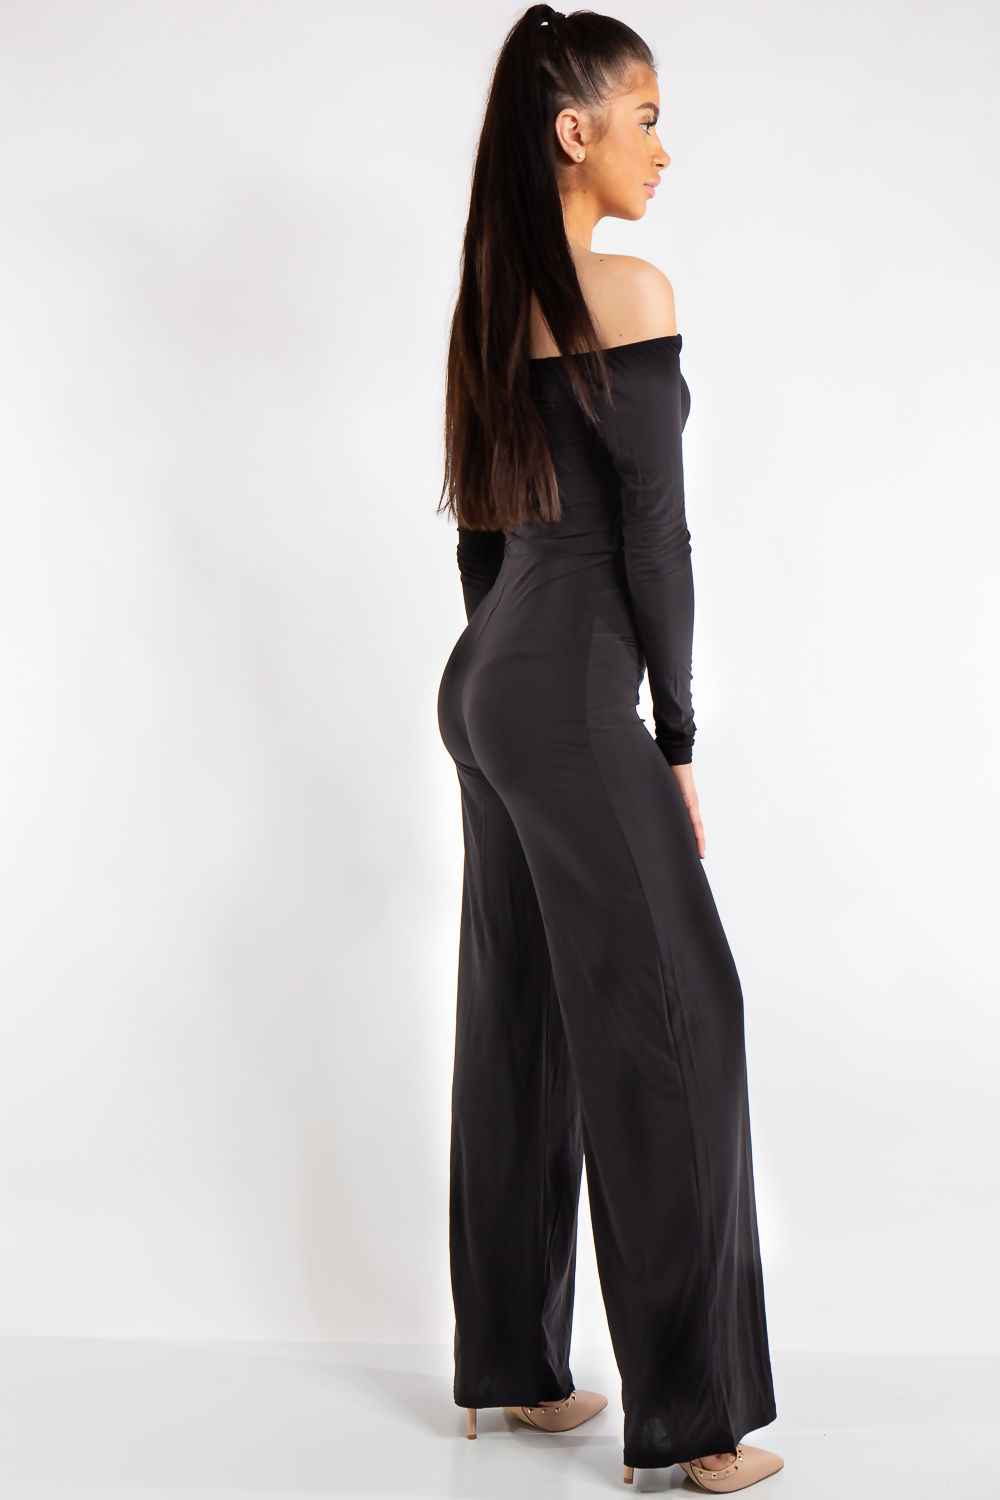 f1fc7476de Sabrina Black Off Shoulder Bardot Jumpsuit